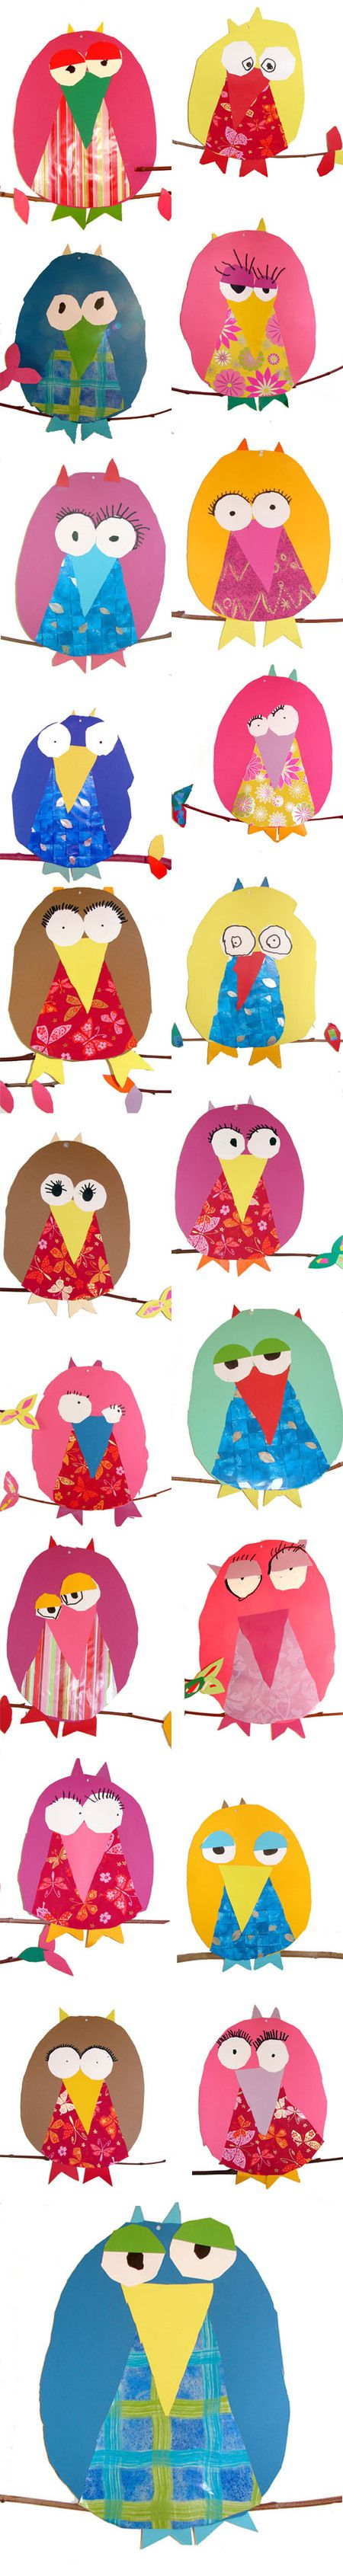 Children's craft table: Provide owl shapes and templates of the eyes and beak to trace and cut out on their own.